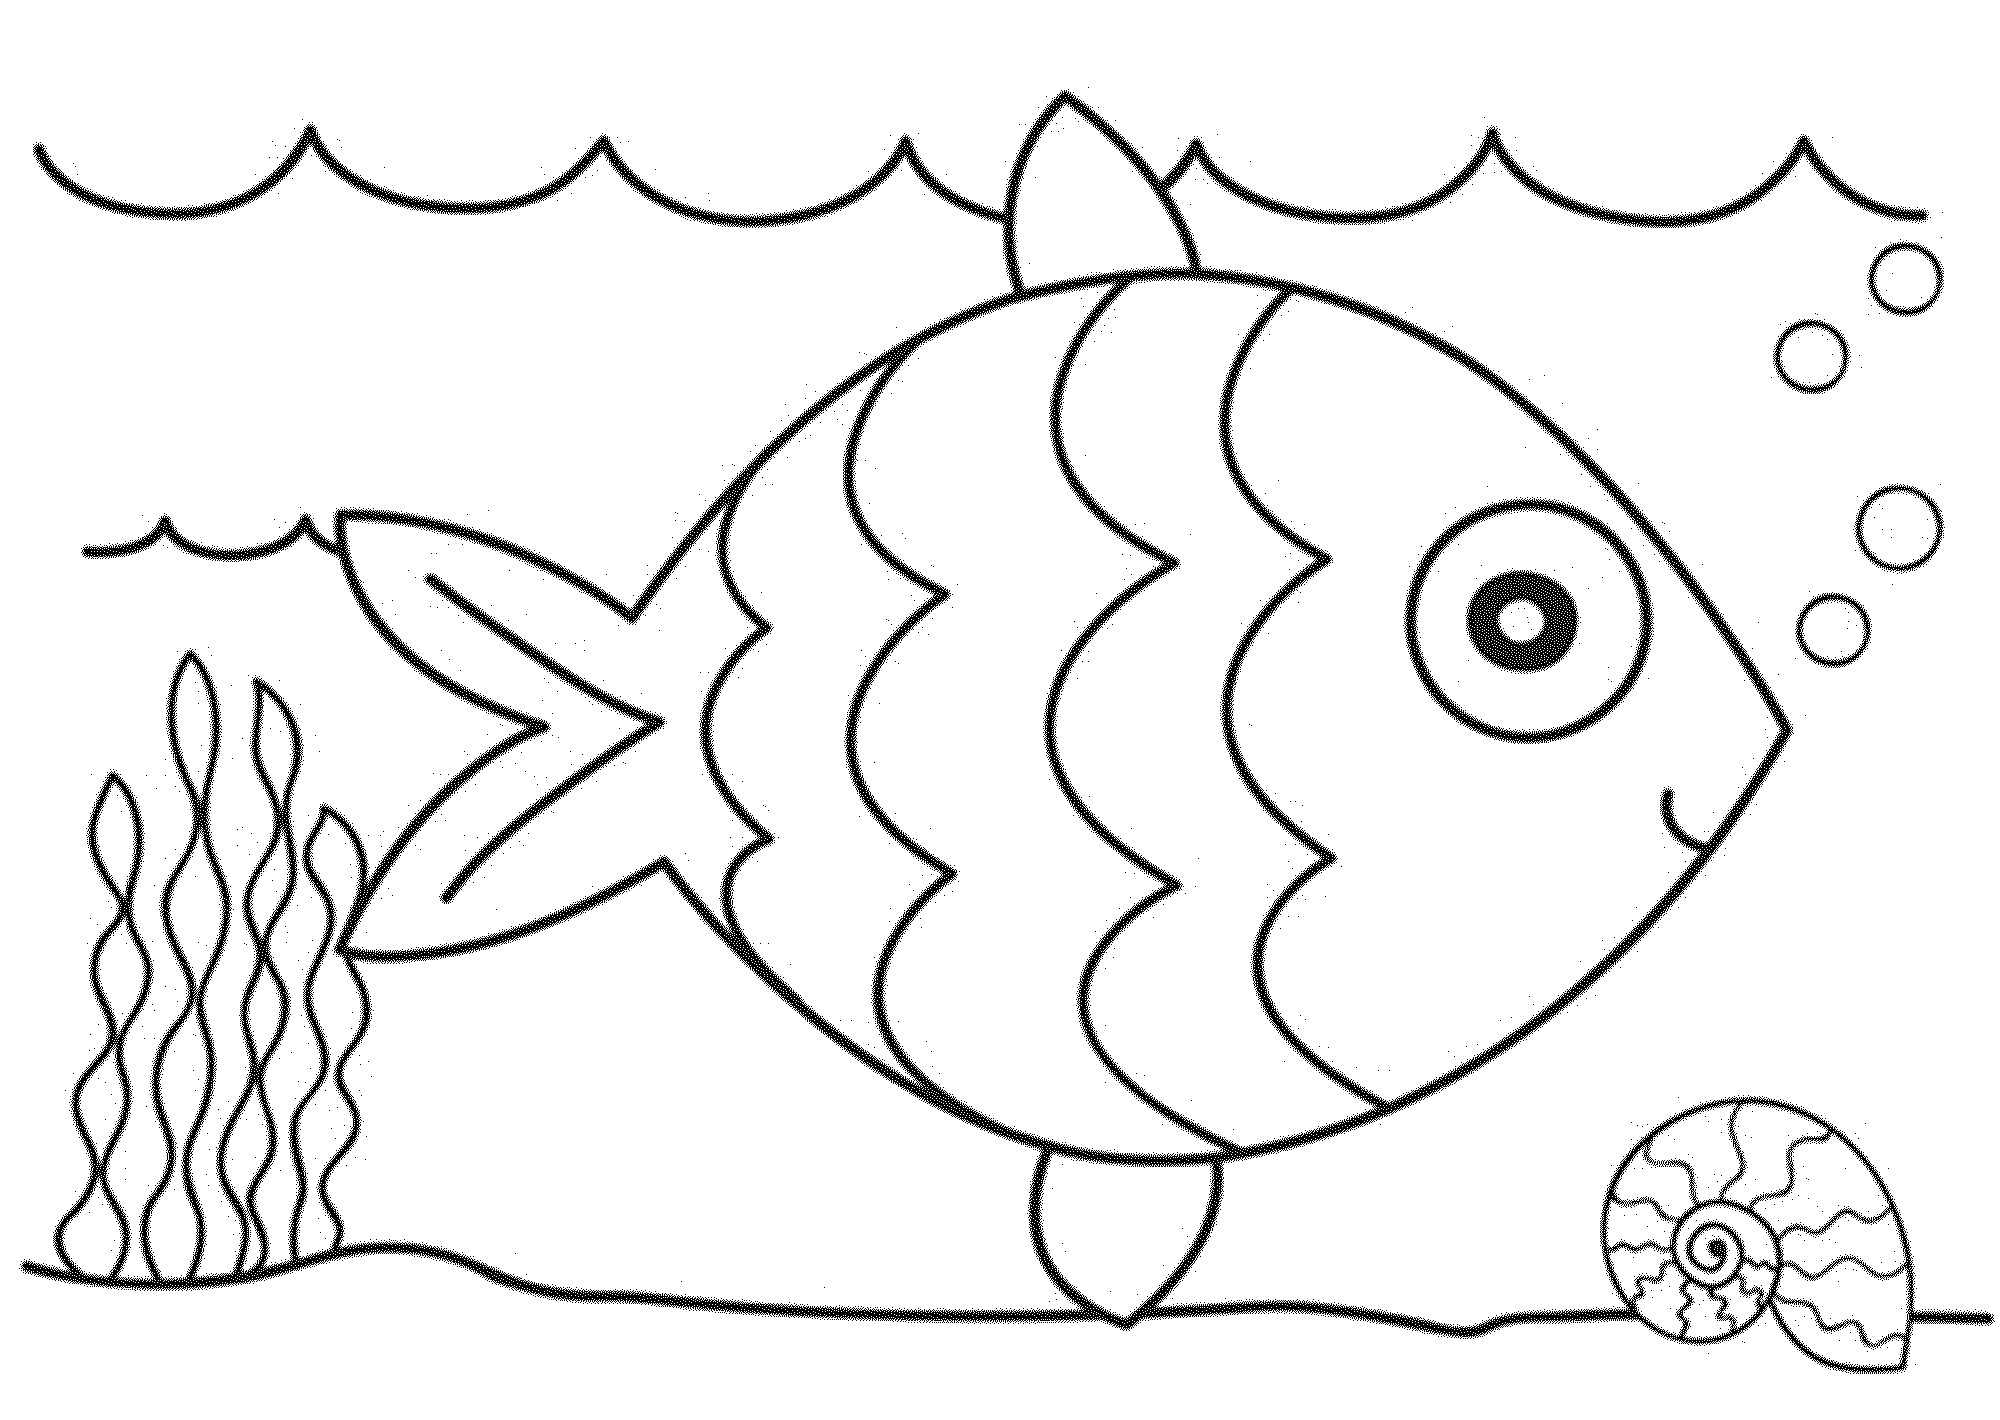 Rainbow Fish Coloring Pages Preschoolers Coloring Pages Cartoon Fish Coloring Pages Png Ssl Fishing